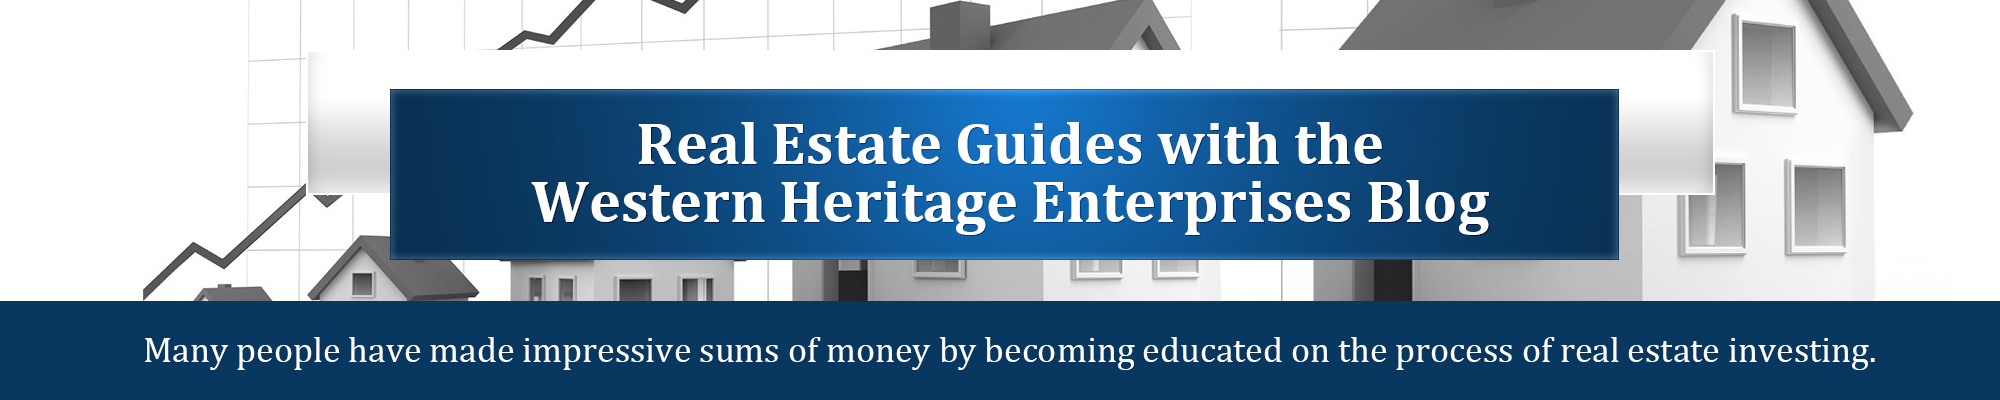 Real Estate Guides with the Western Heritage Enterprises Blog